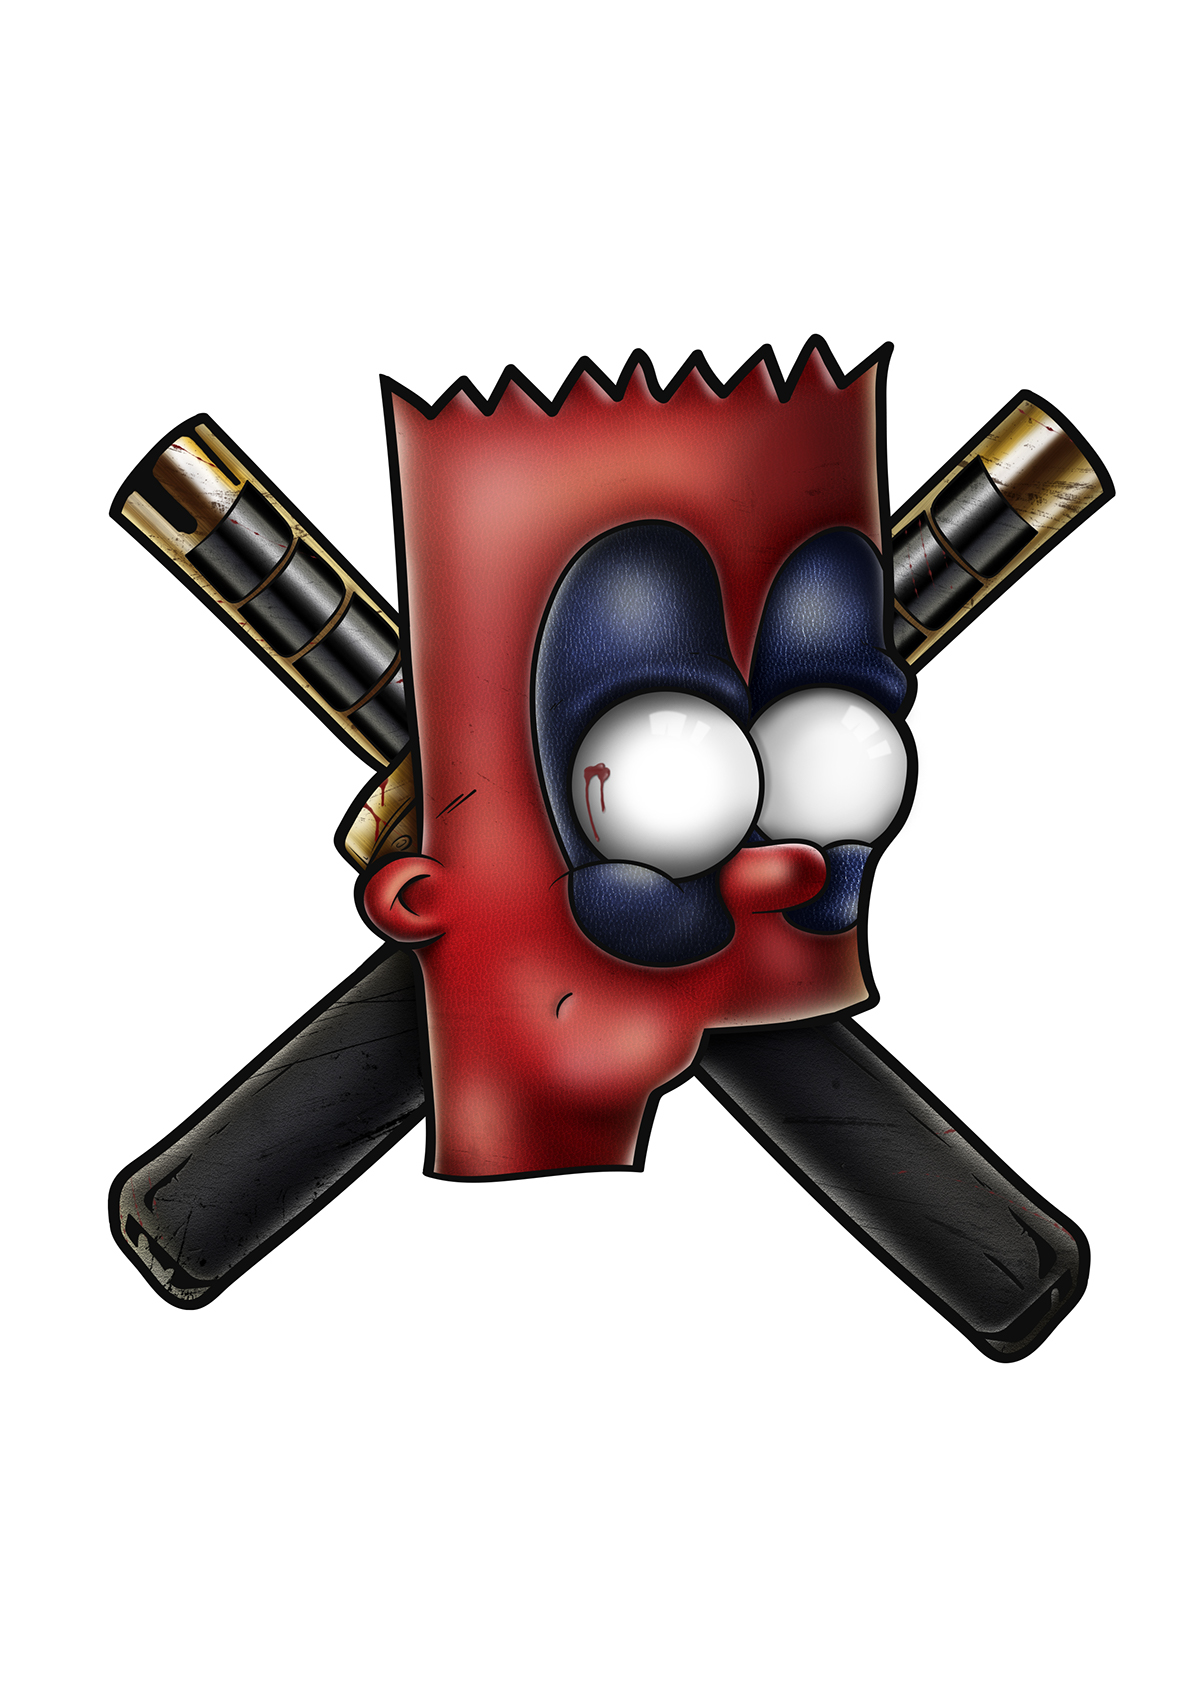 deadpool Bart simpsons Landy stickers Illustrator Simpson Cinema landy therlonge Bart Simpsons comics graphiste French